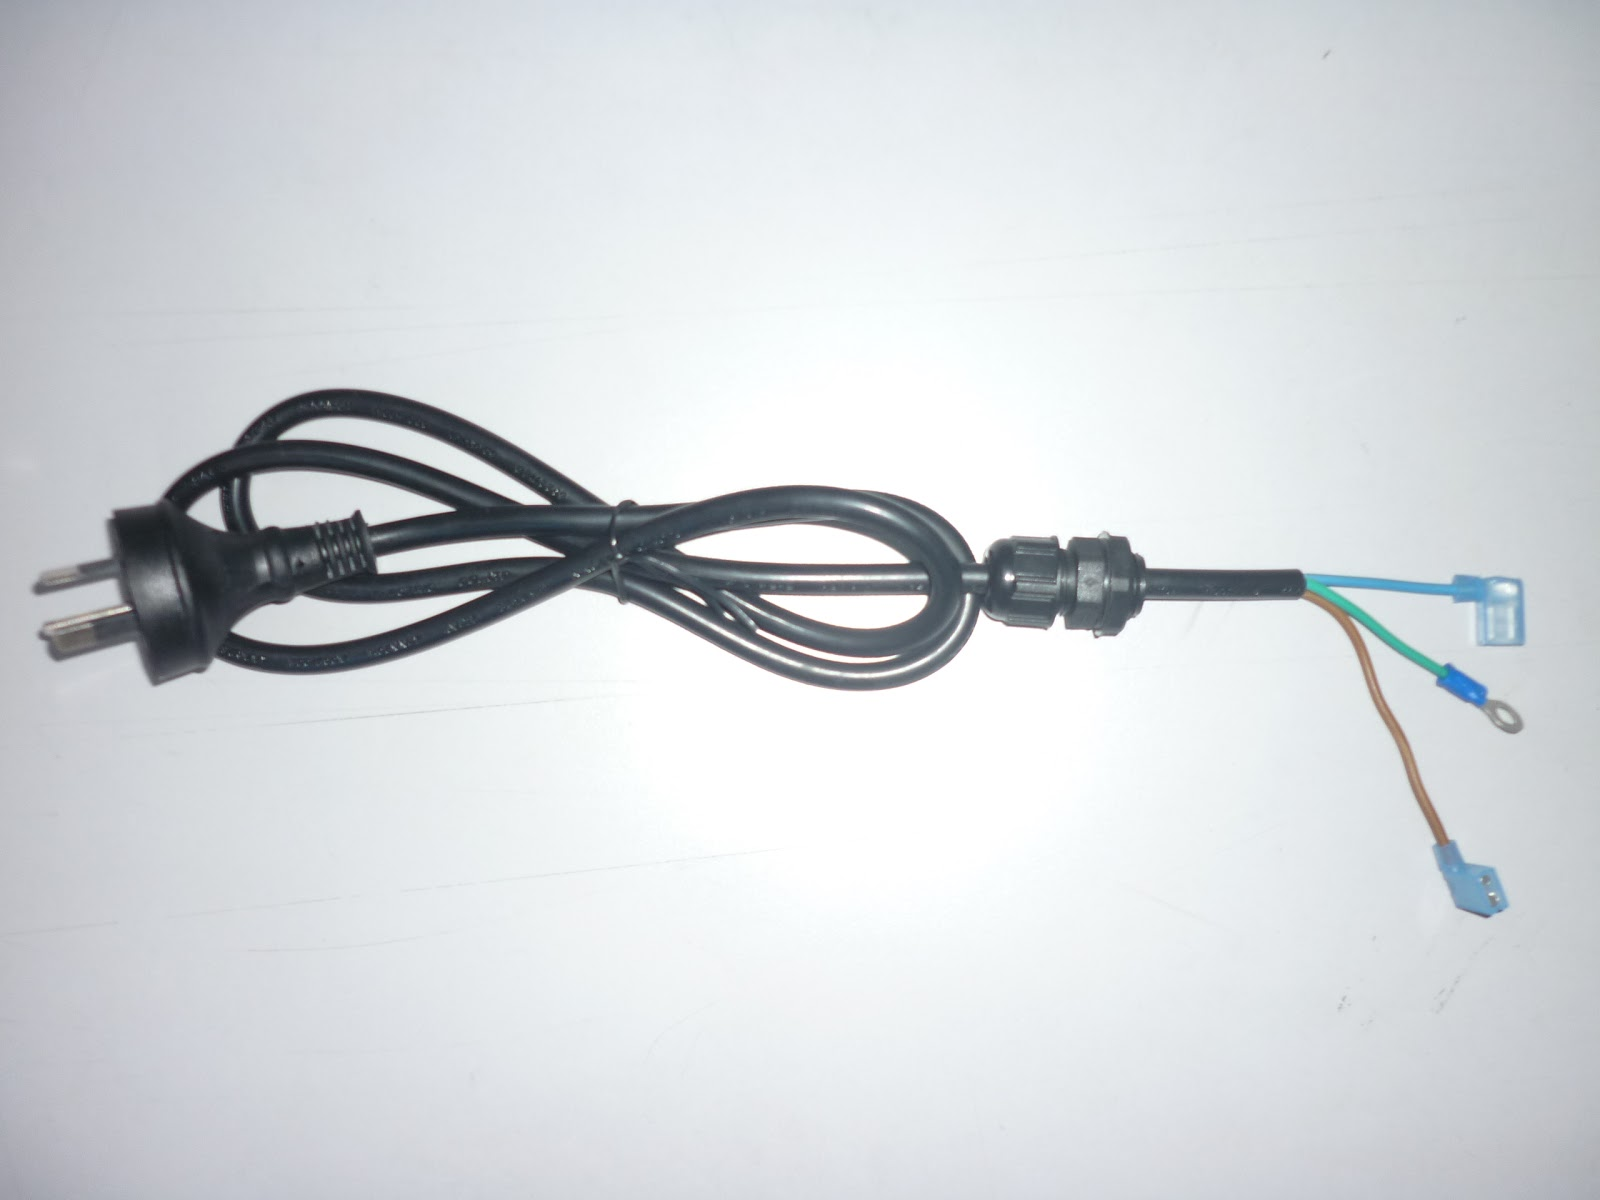 hitech industrial engineering wire power cord harness